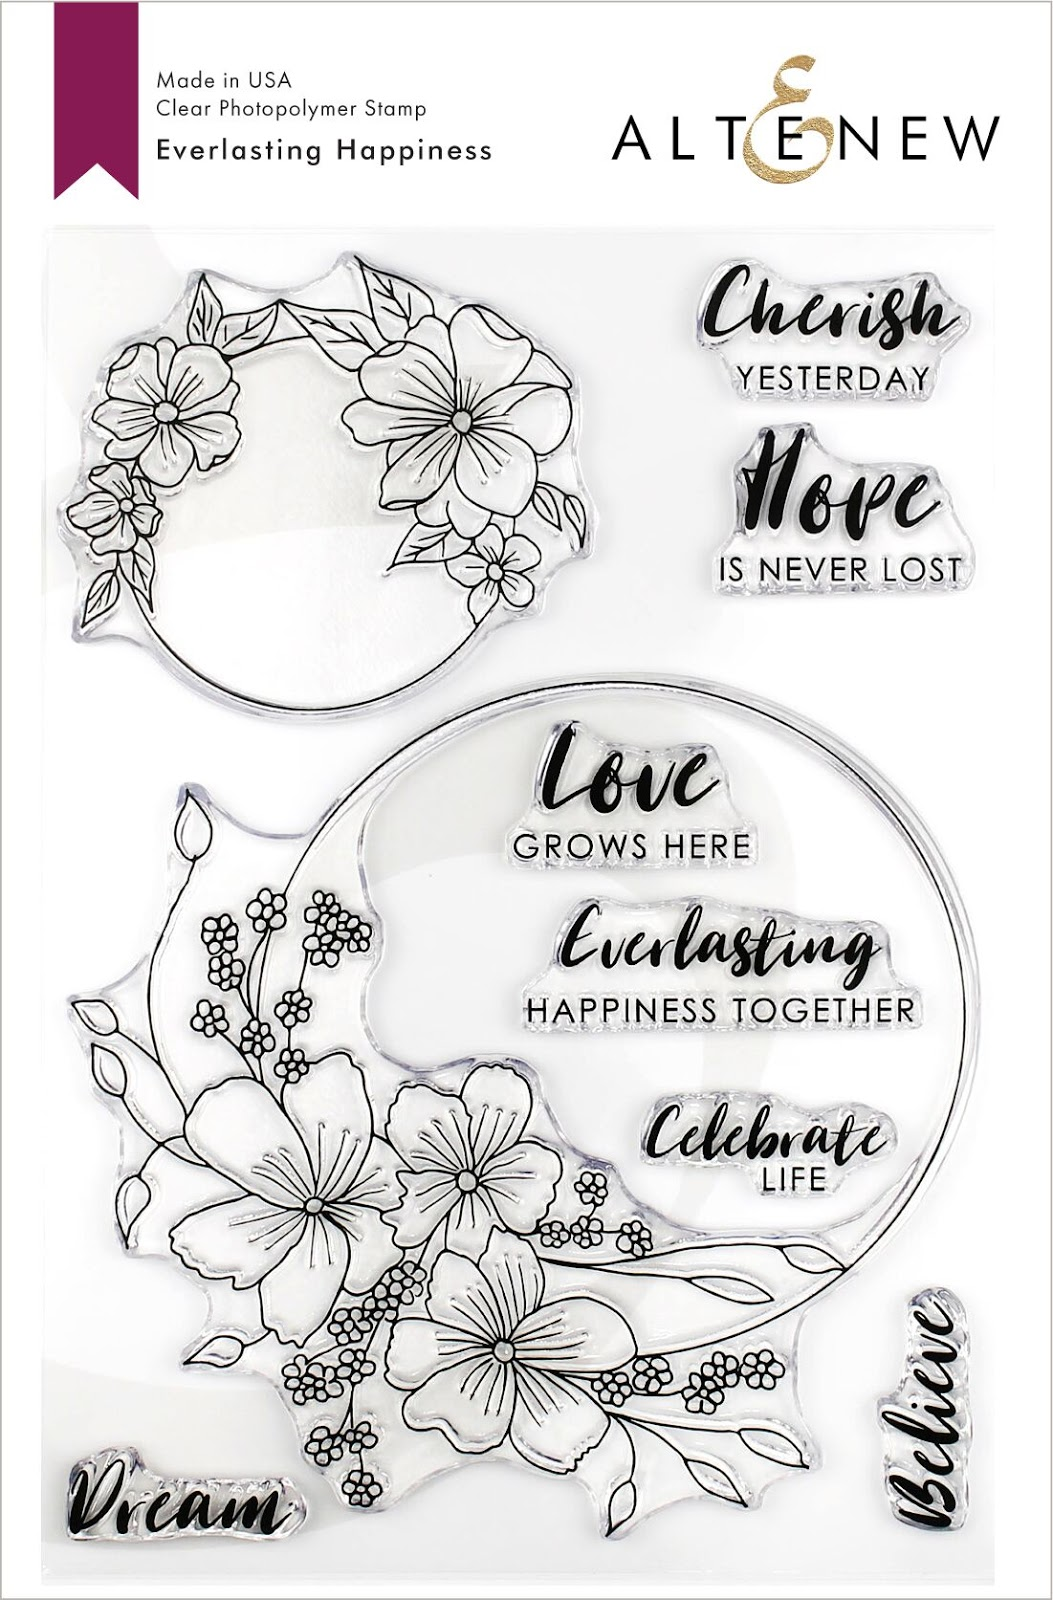 https://altenew.com/products/everlasting-happiness-stamp-set